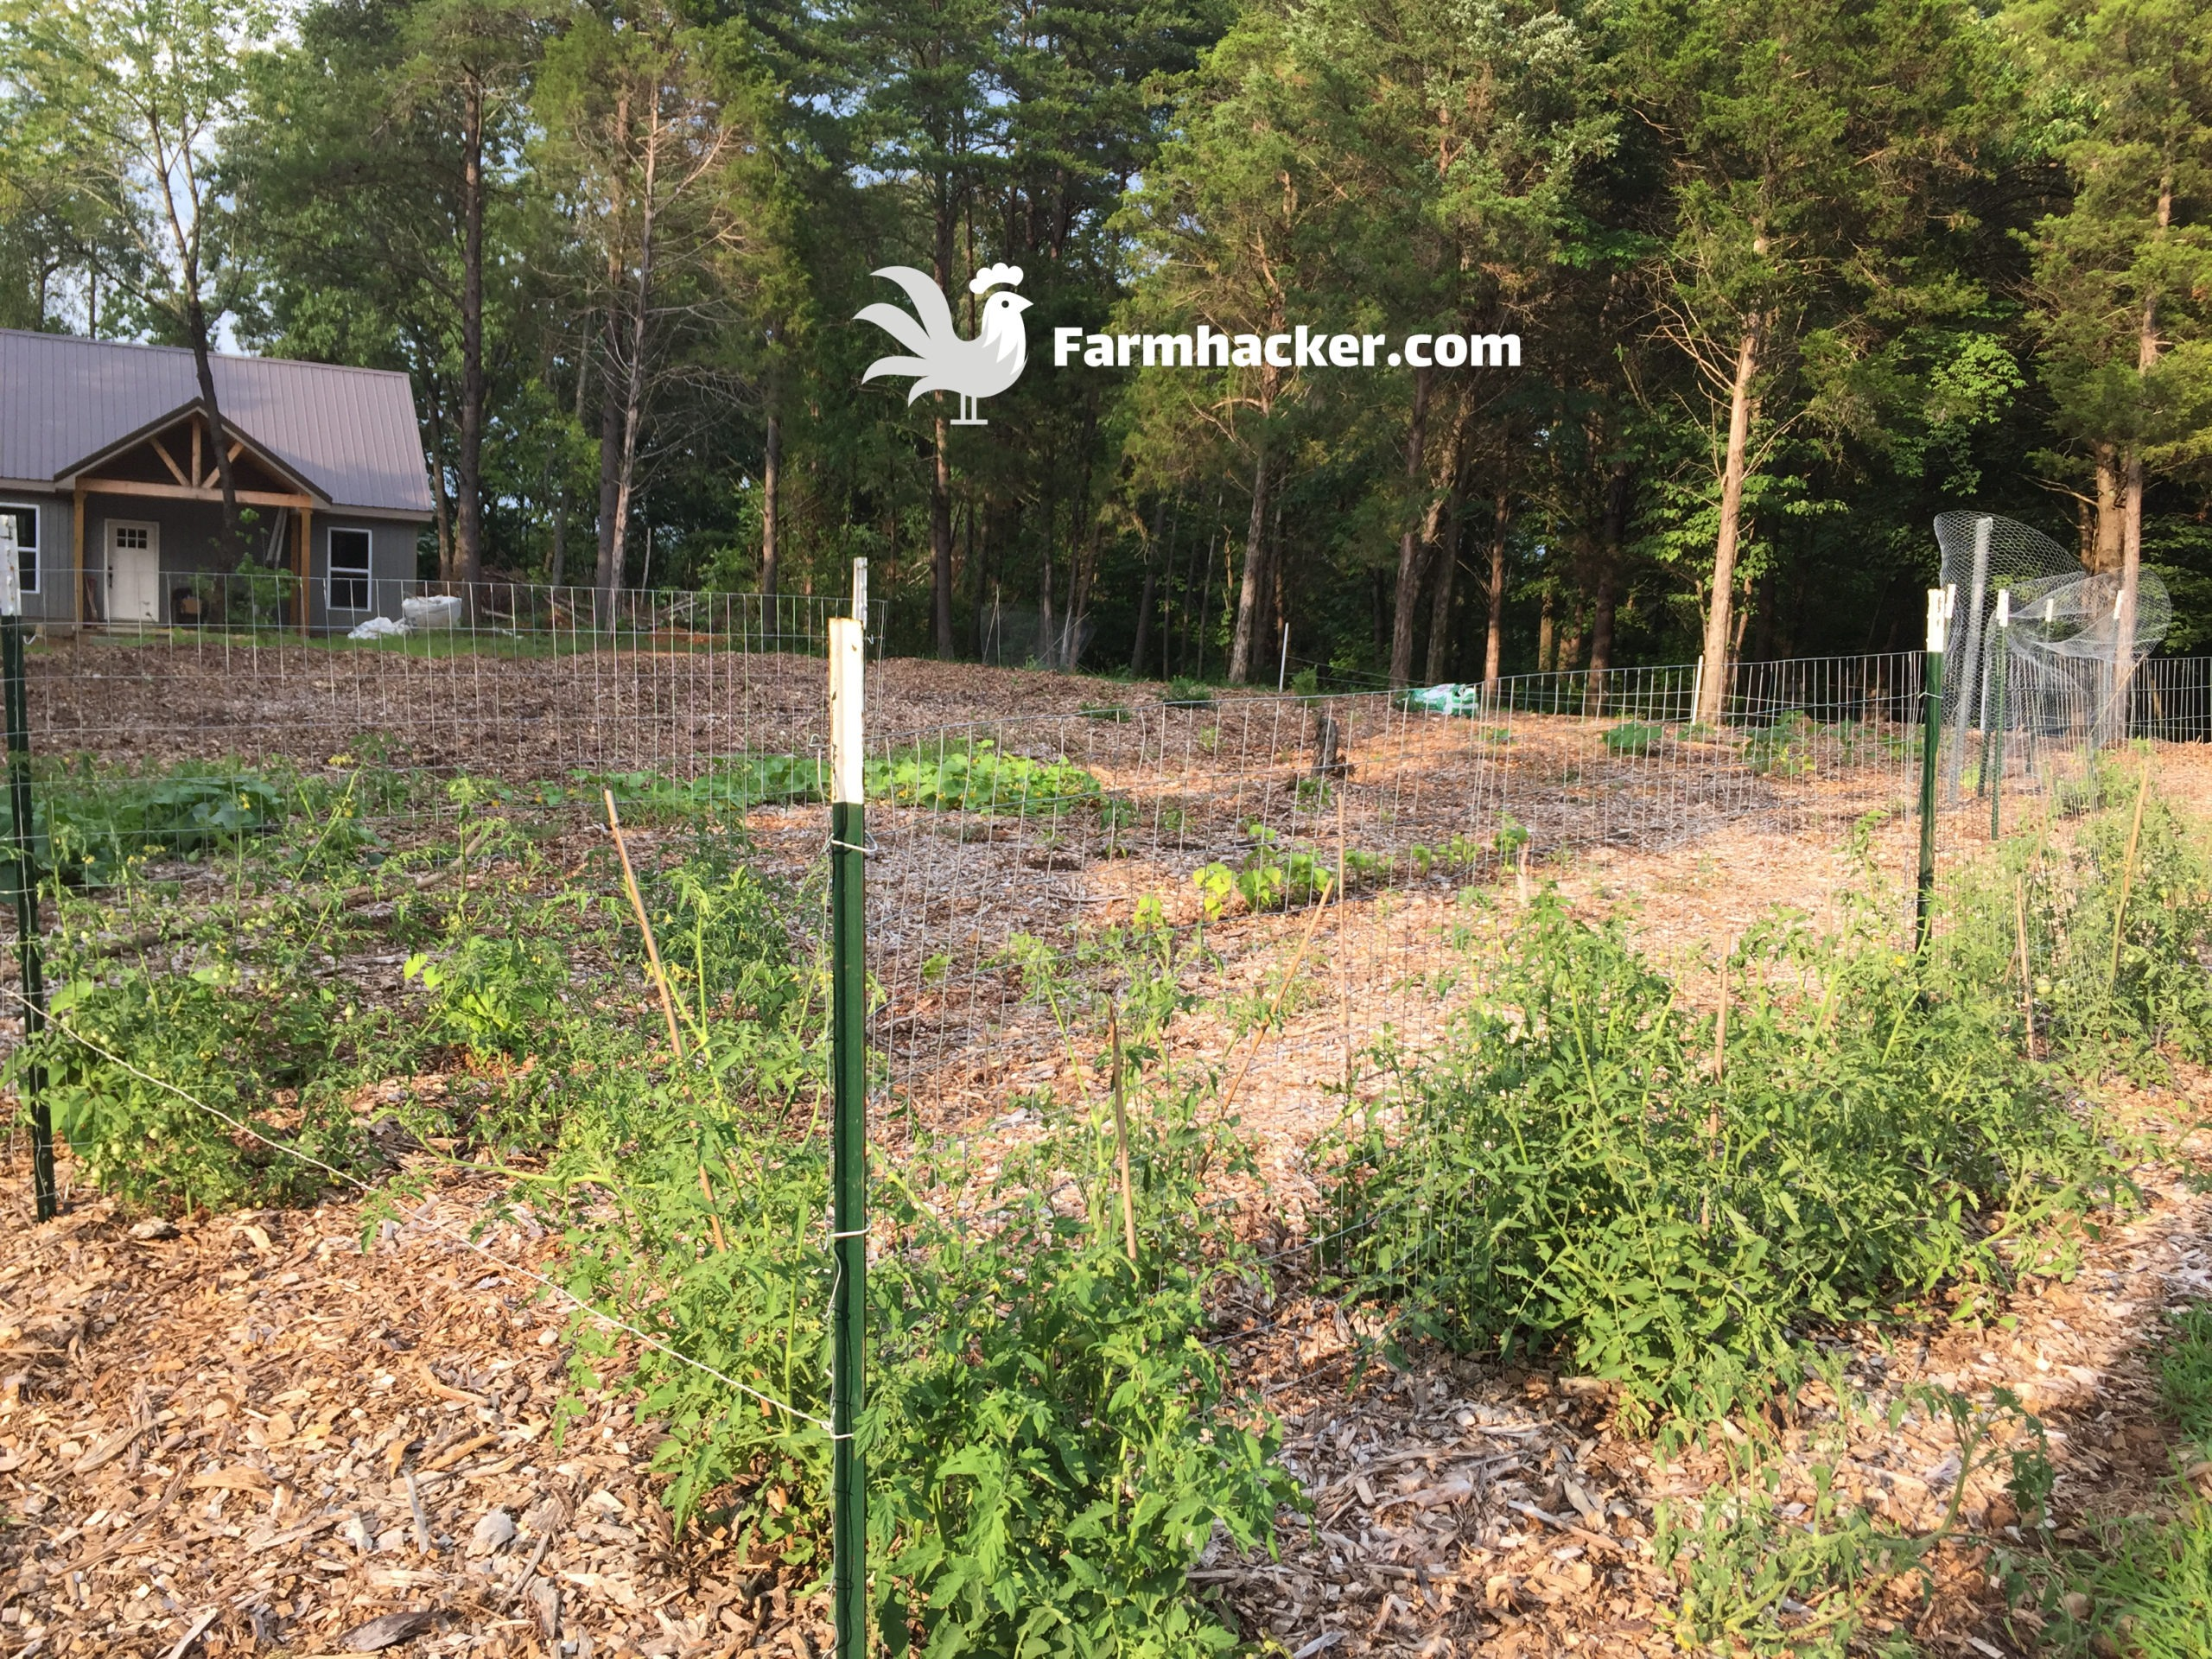 Woodchip Gardening - How to Start a Farm From Scratch